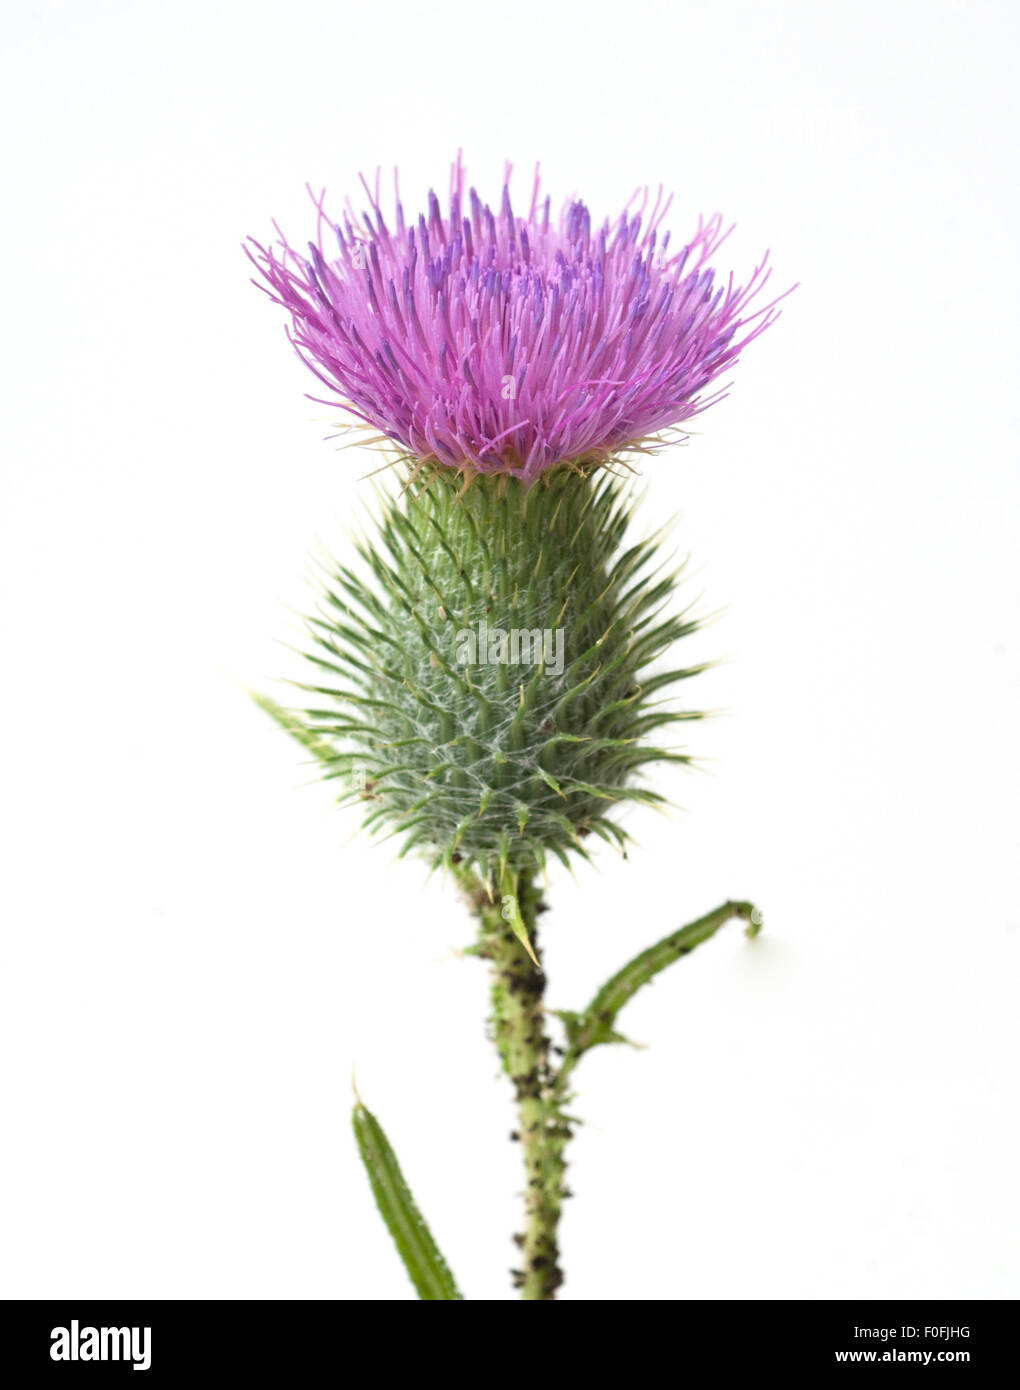 Gemeine, Kratzdistel, Cirsium vulgare, Stock Photo